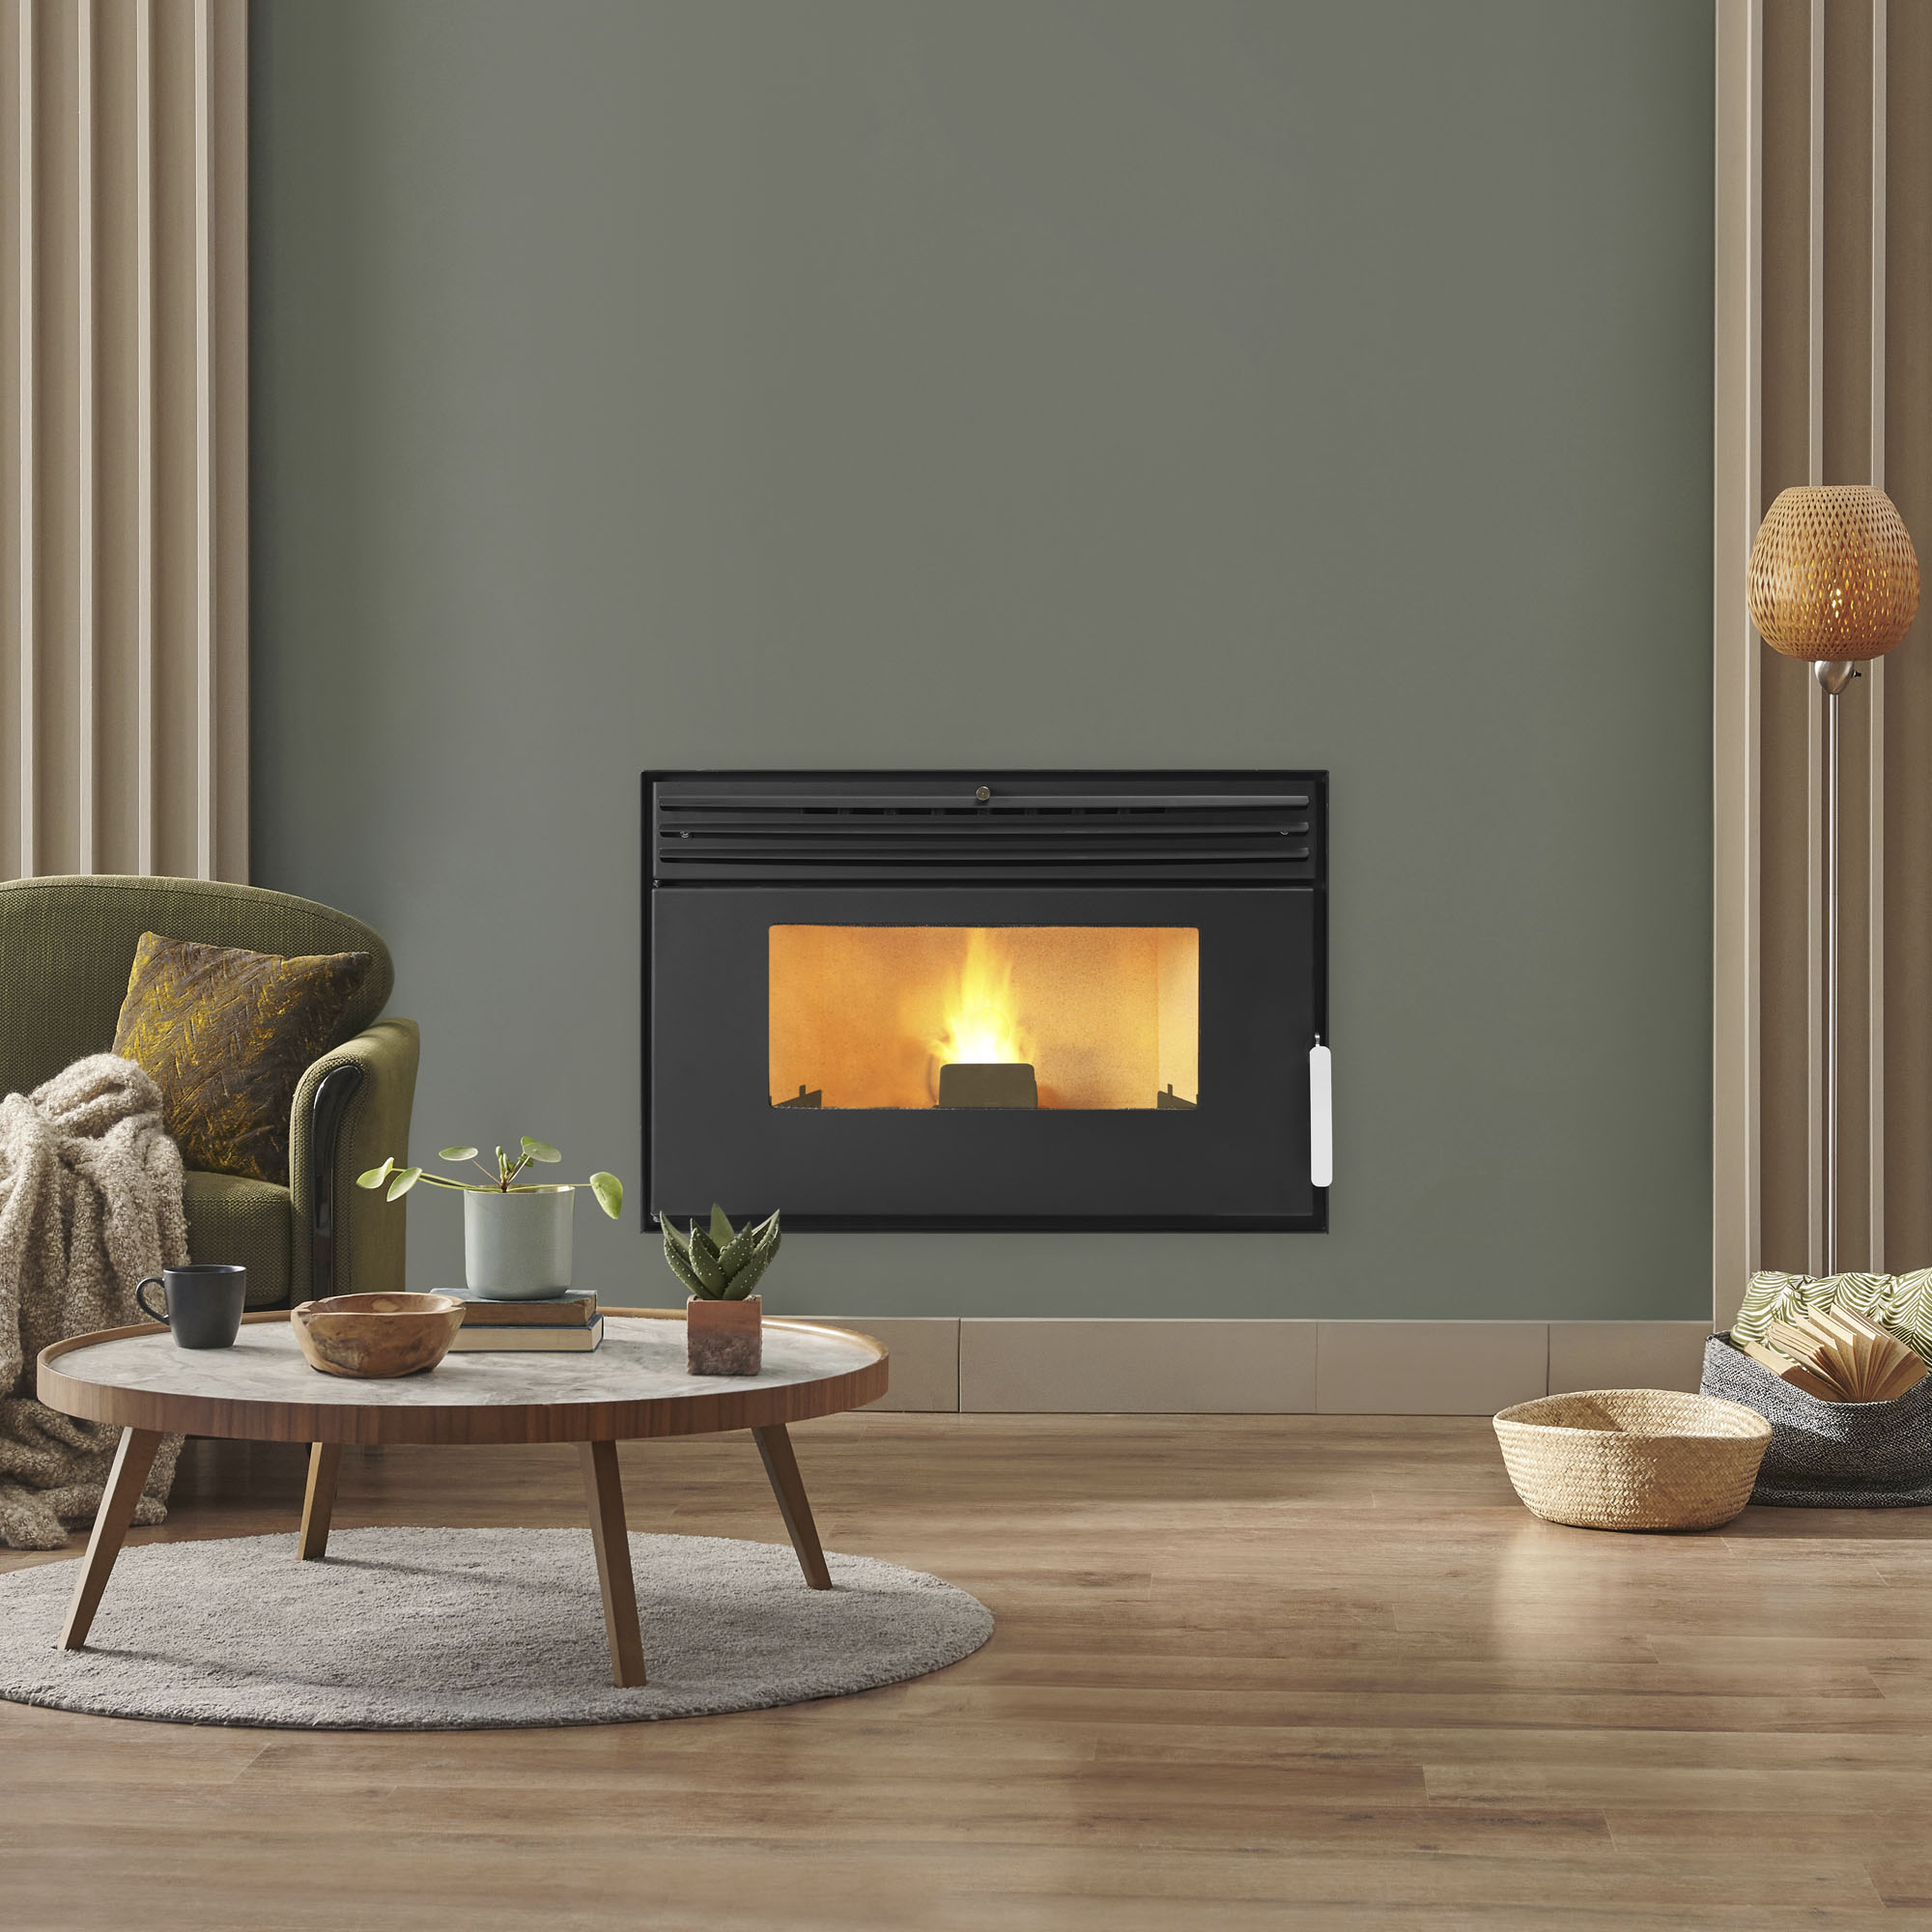 Modern Black Metal Fireplace Burning Wood Fire. Firewood in Loft Contemporary Apartment on White Wall Background Vertical View. Elegant Comfort Decoration for Residential Estate. Blaze in Living Room